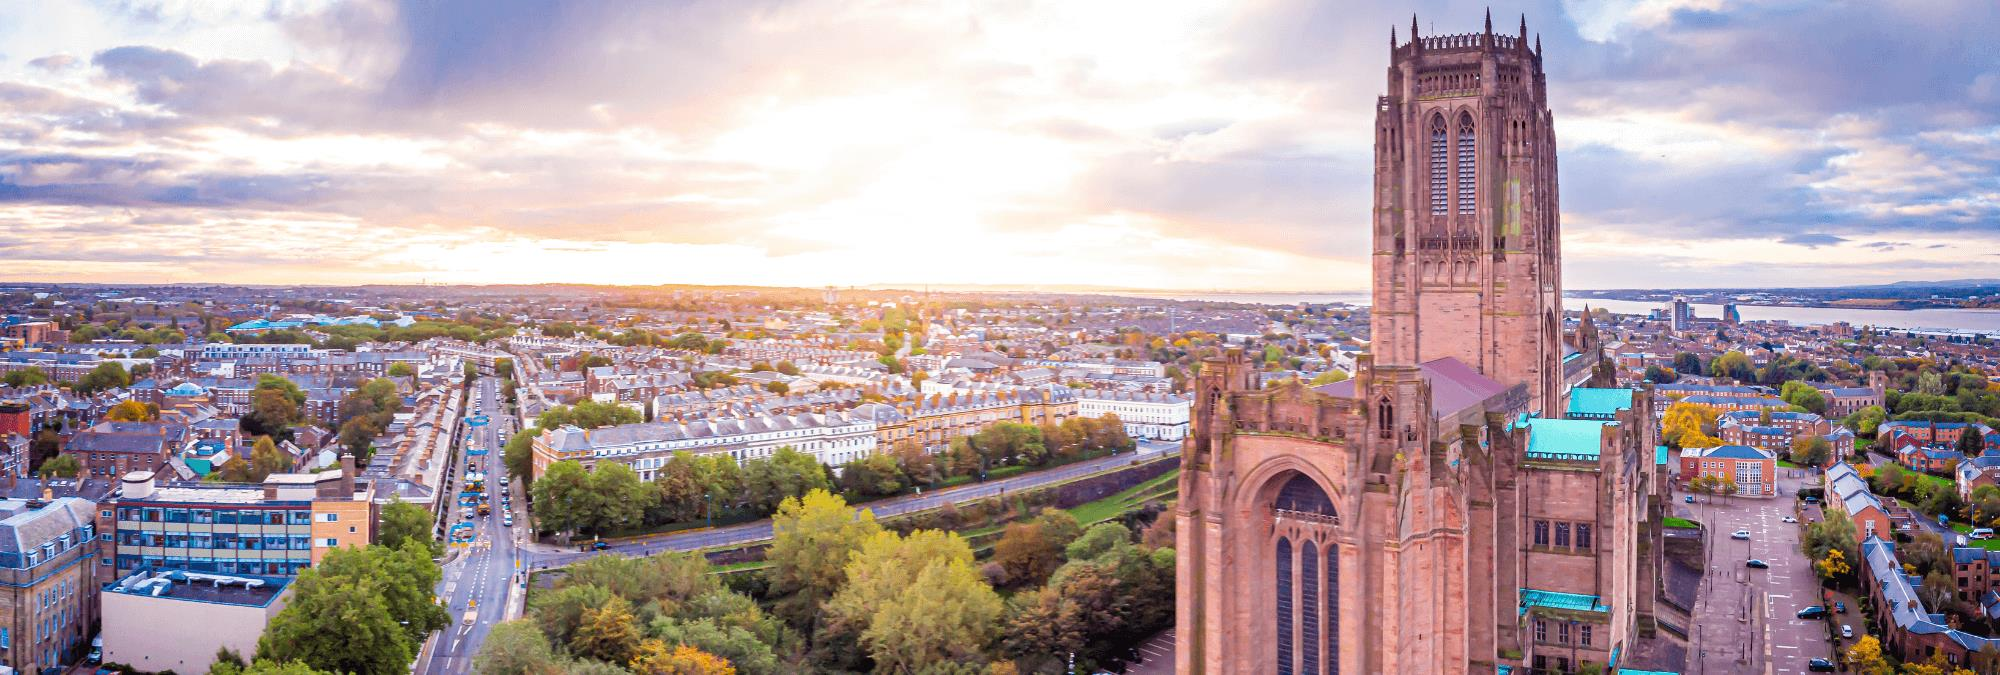 Liverpool from above, with a strong focus on Liverpool's Anglican Cathedral.